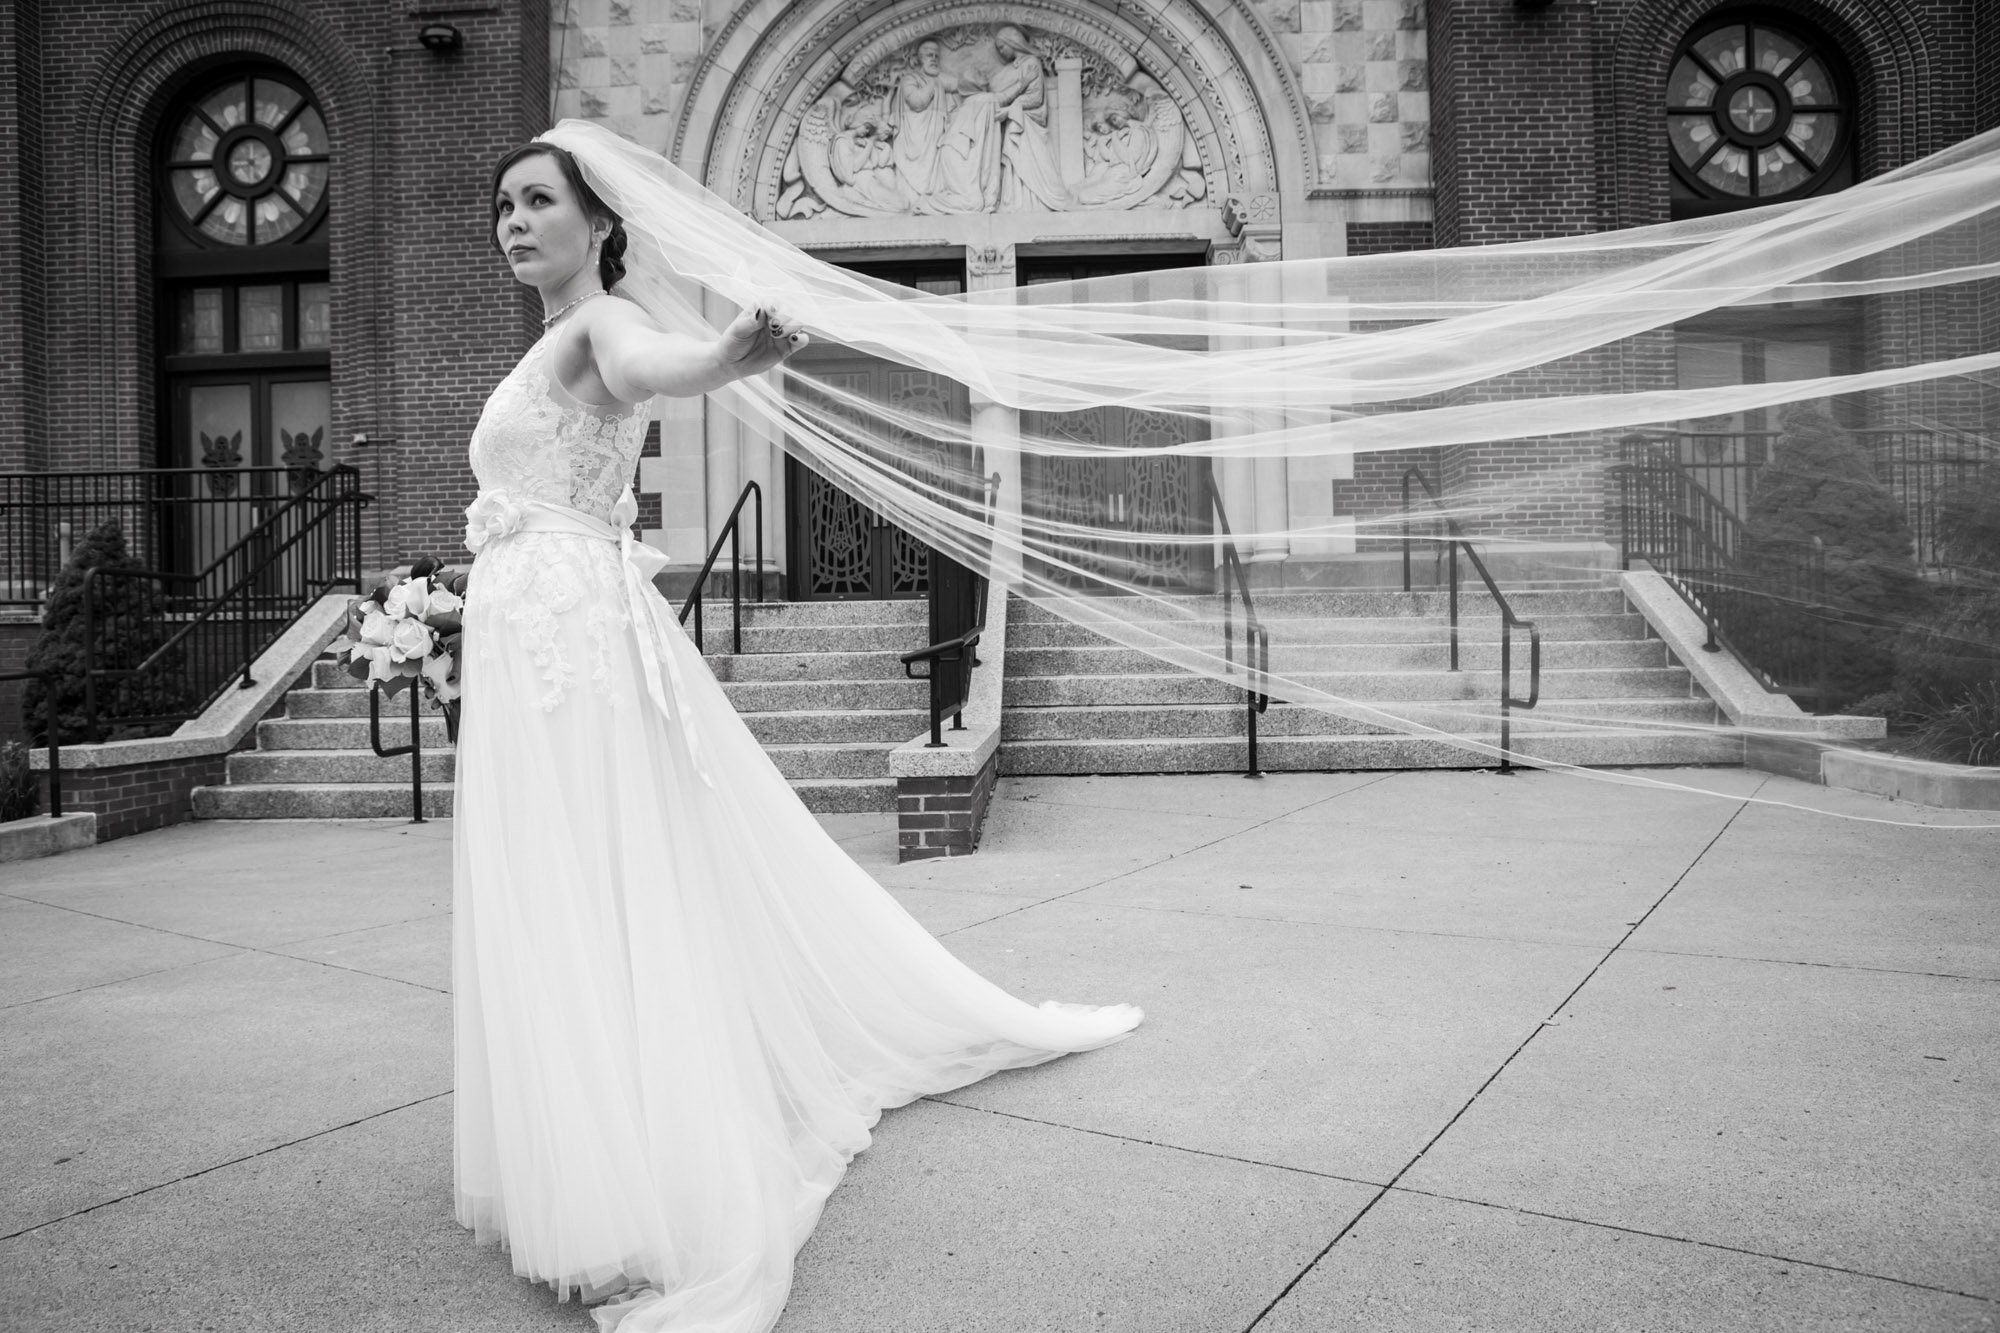 scranton_wedding_photographer_lettieri_pa (12 of 30).jpg